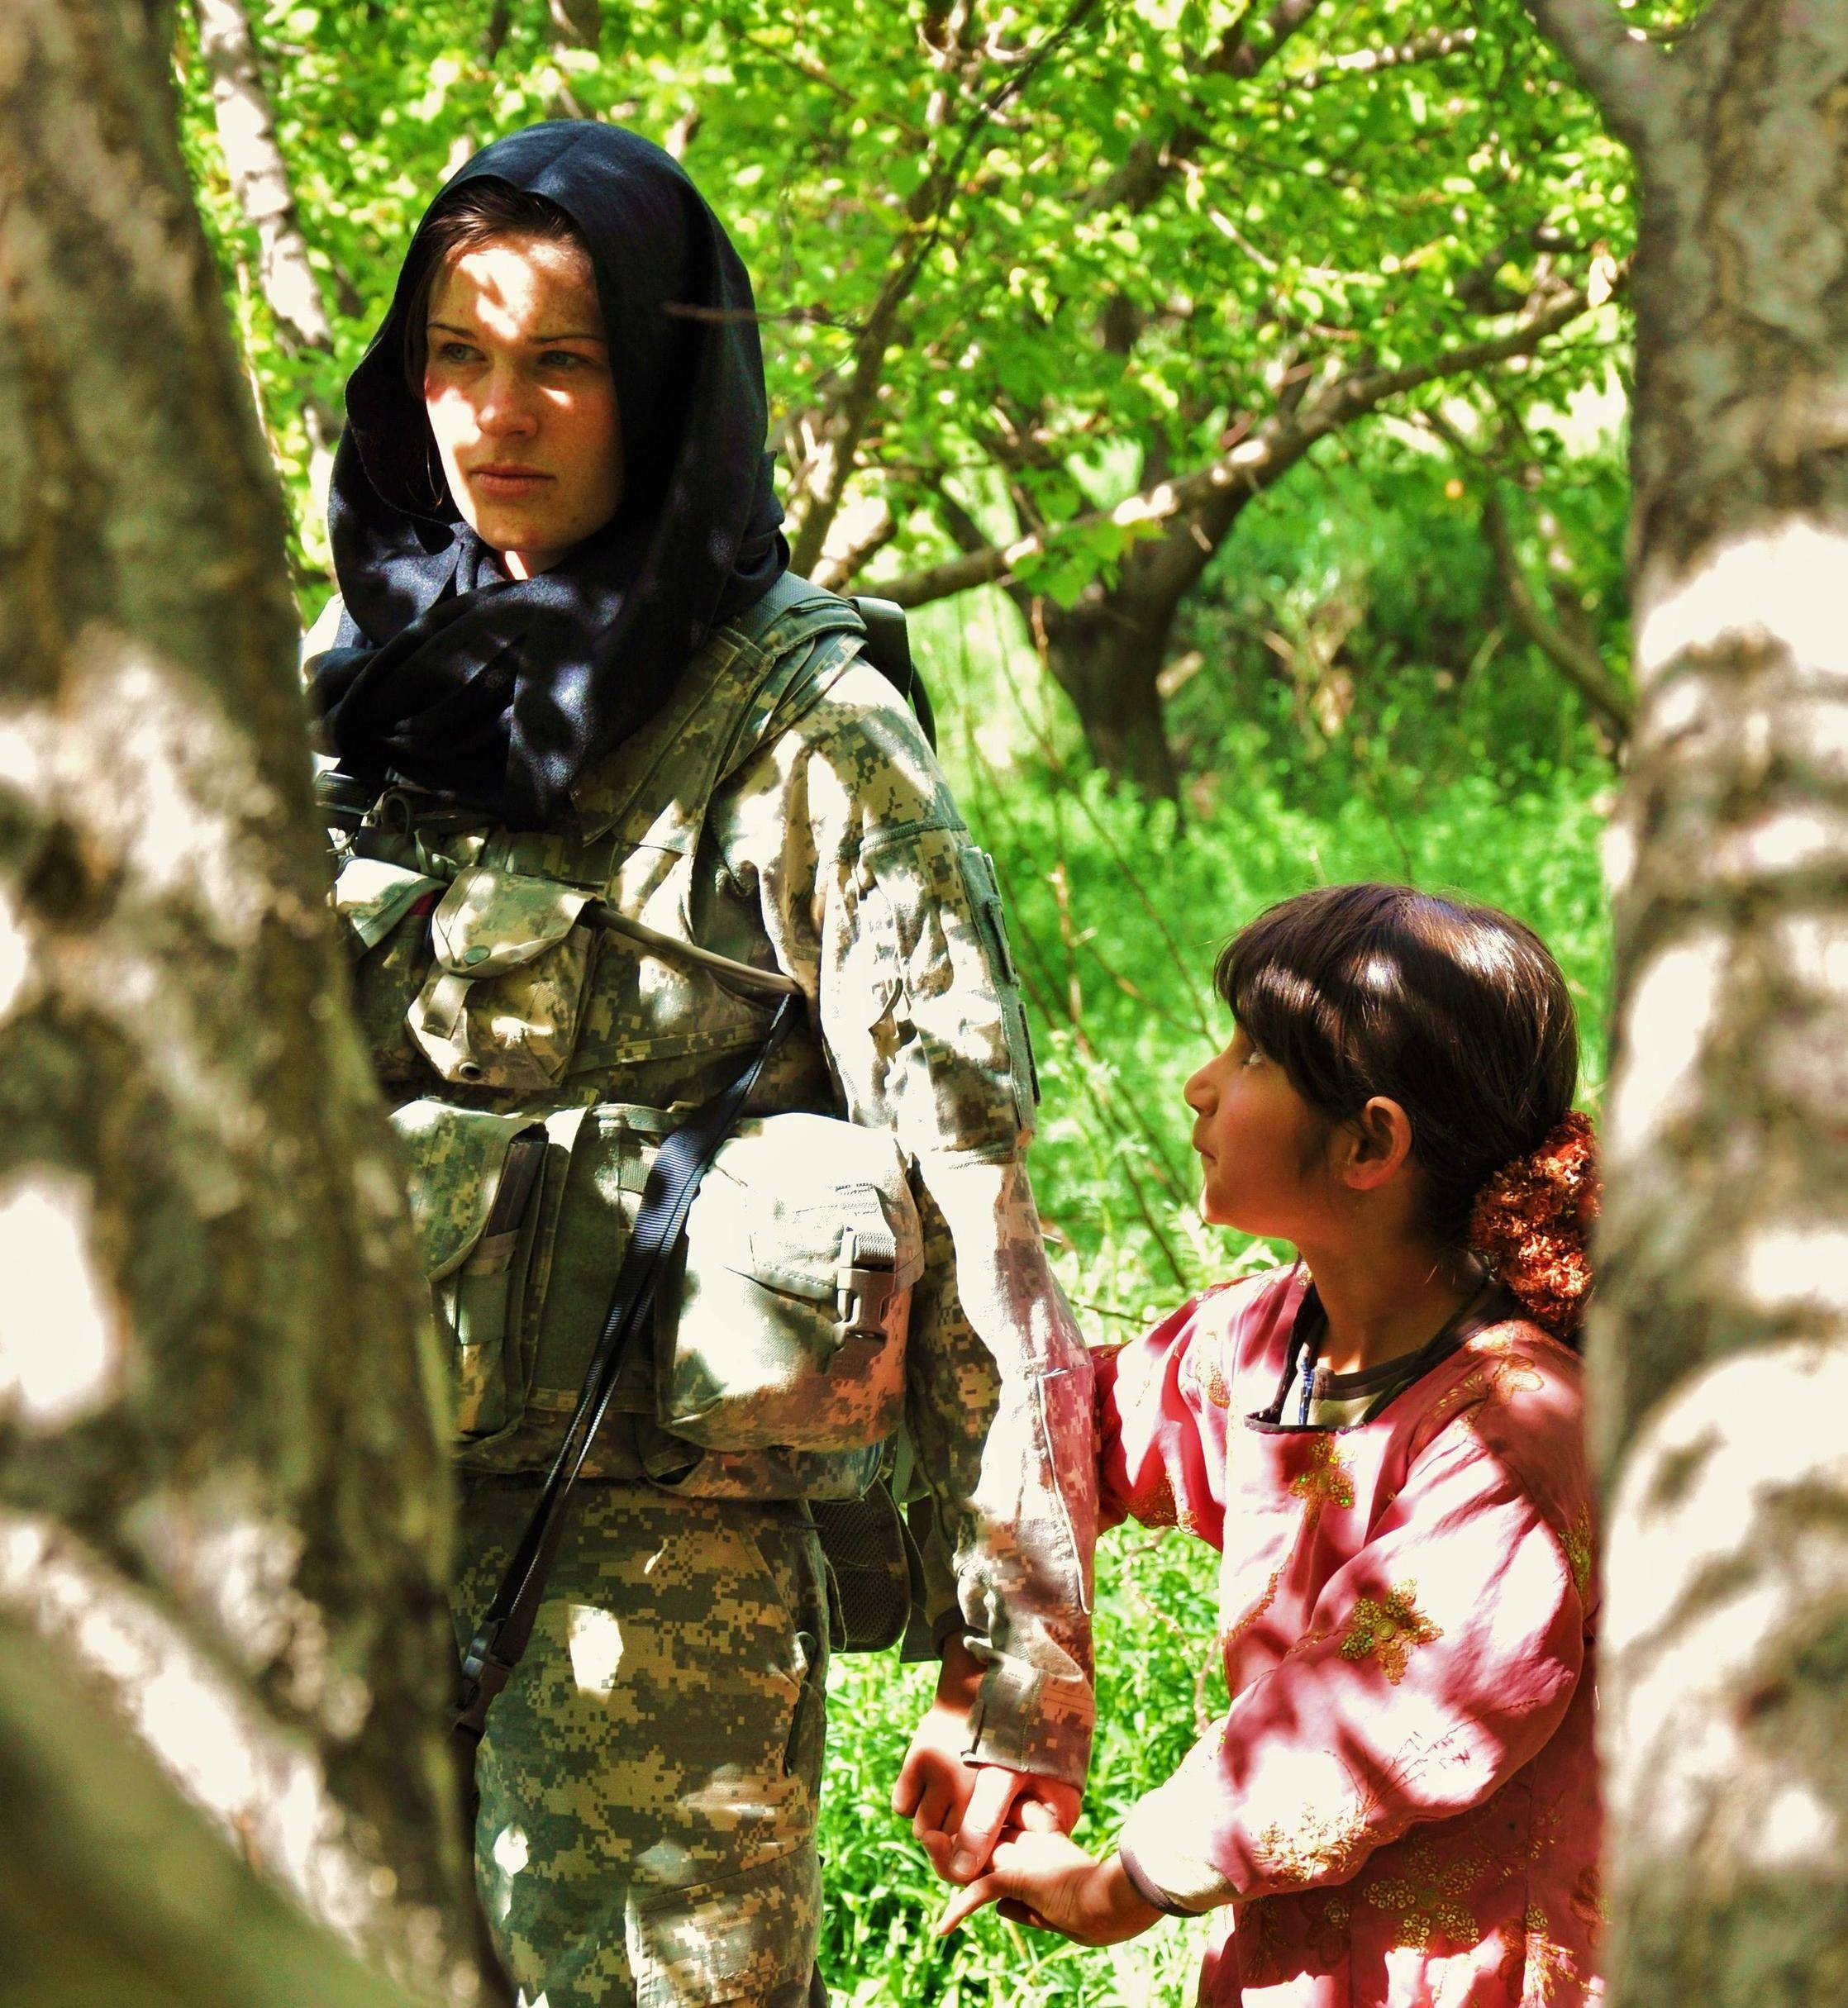 A Young Afghani Girl Being Helped by an American Female ...